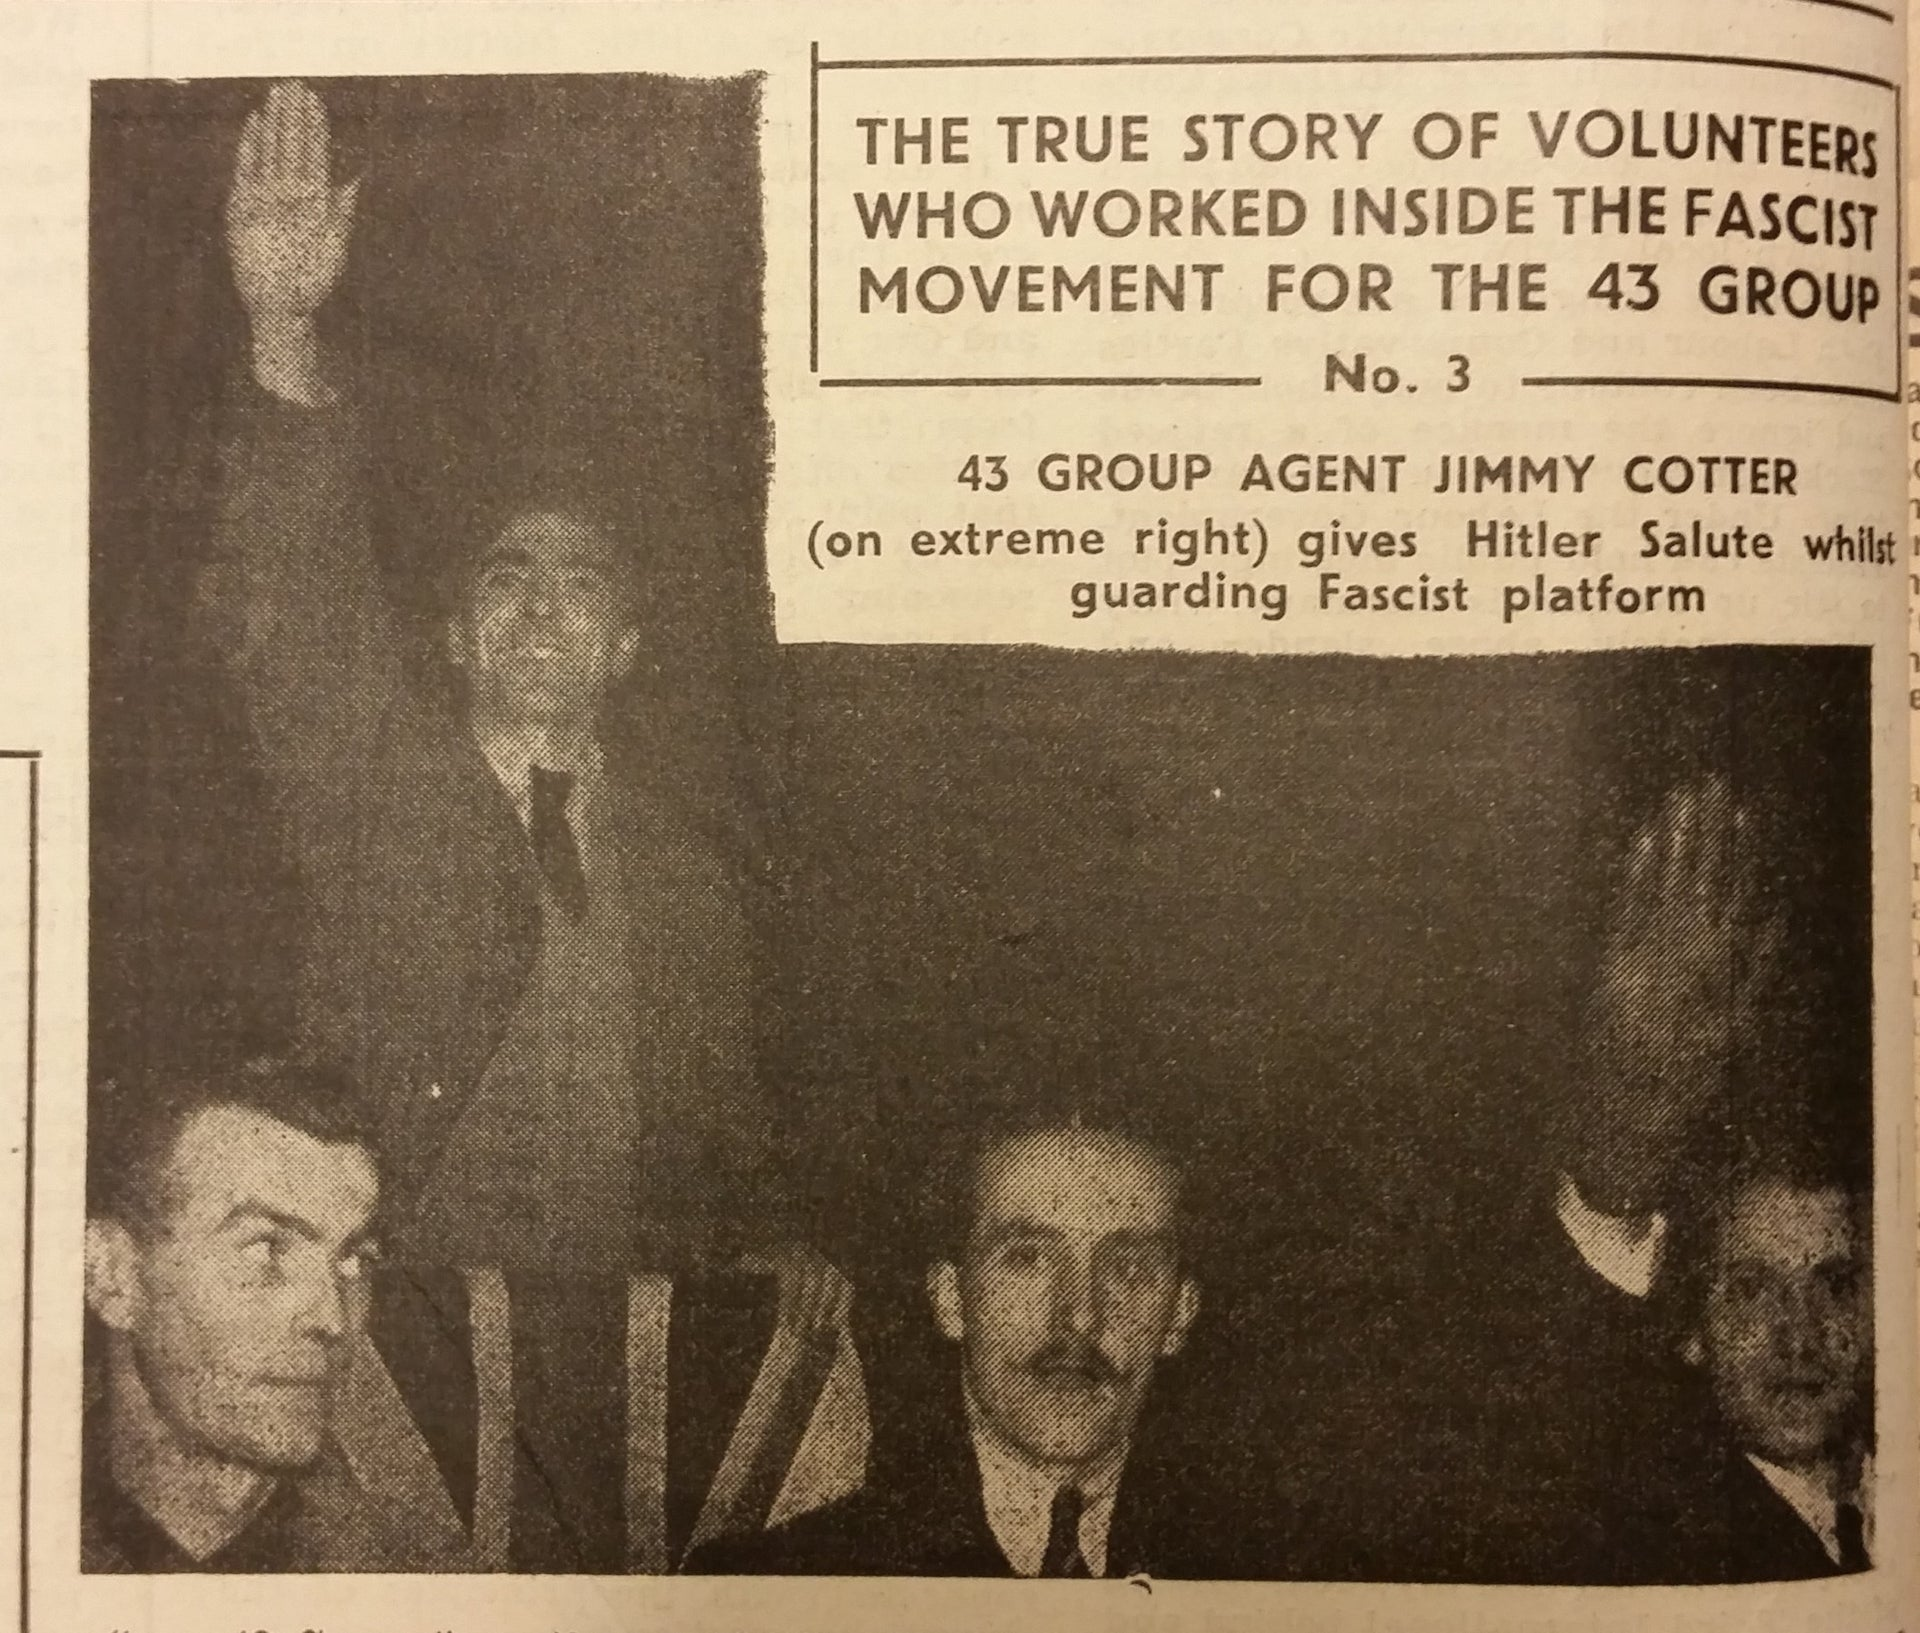 The 43 Group's newspaper On Guard showing fascist Victor Burgess at Earls Court Station, London. The man saluting on the far right is 43 Group spy James Cotter.